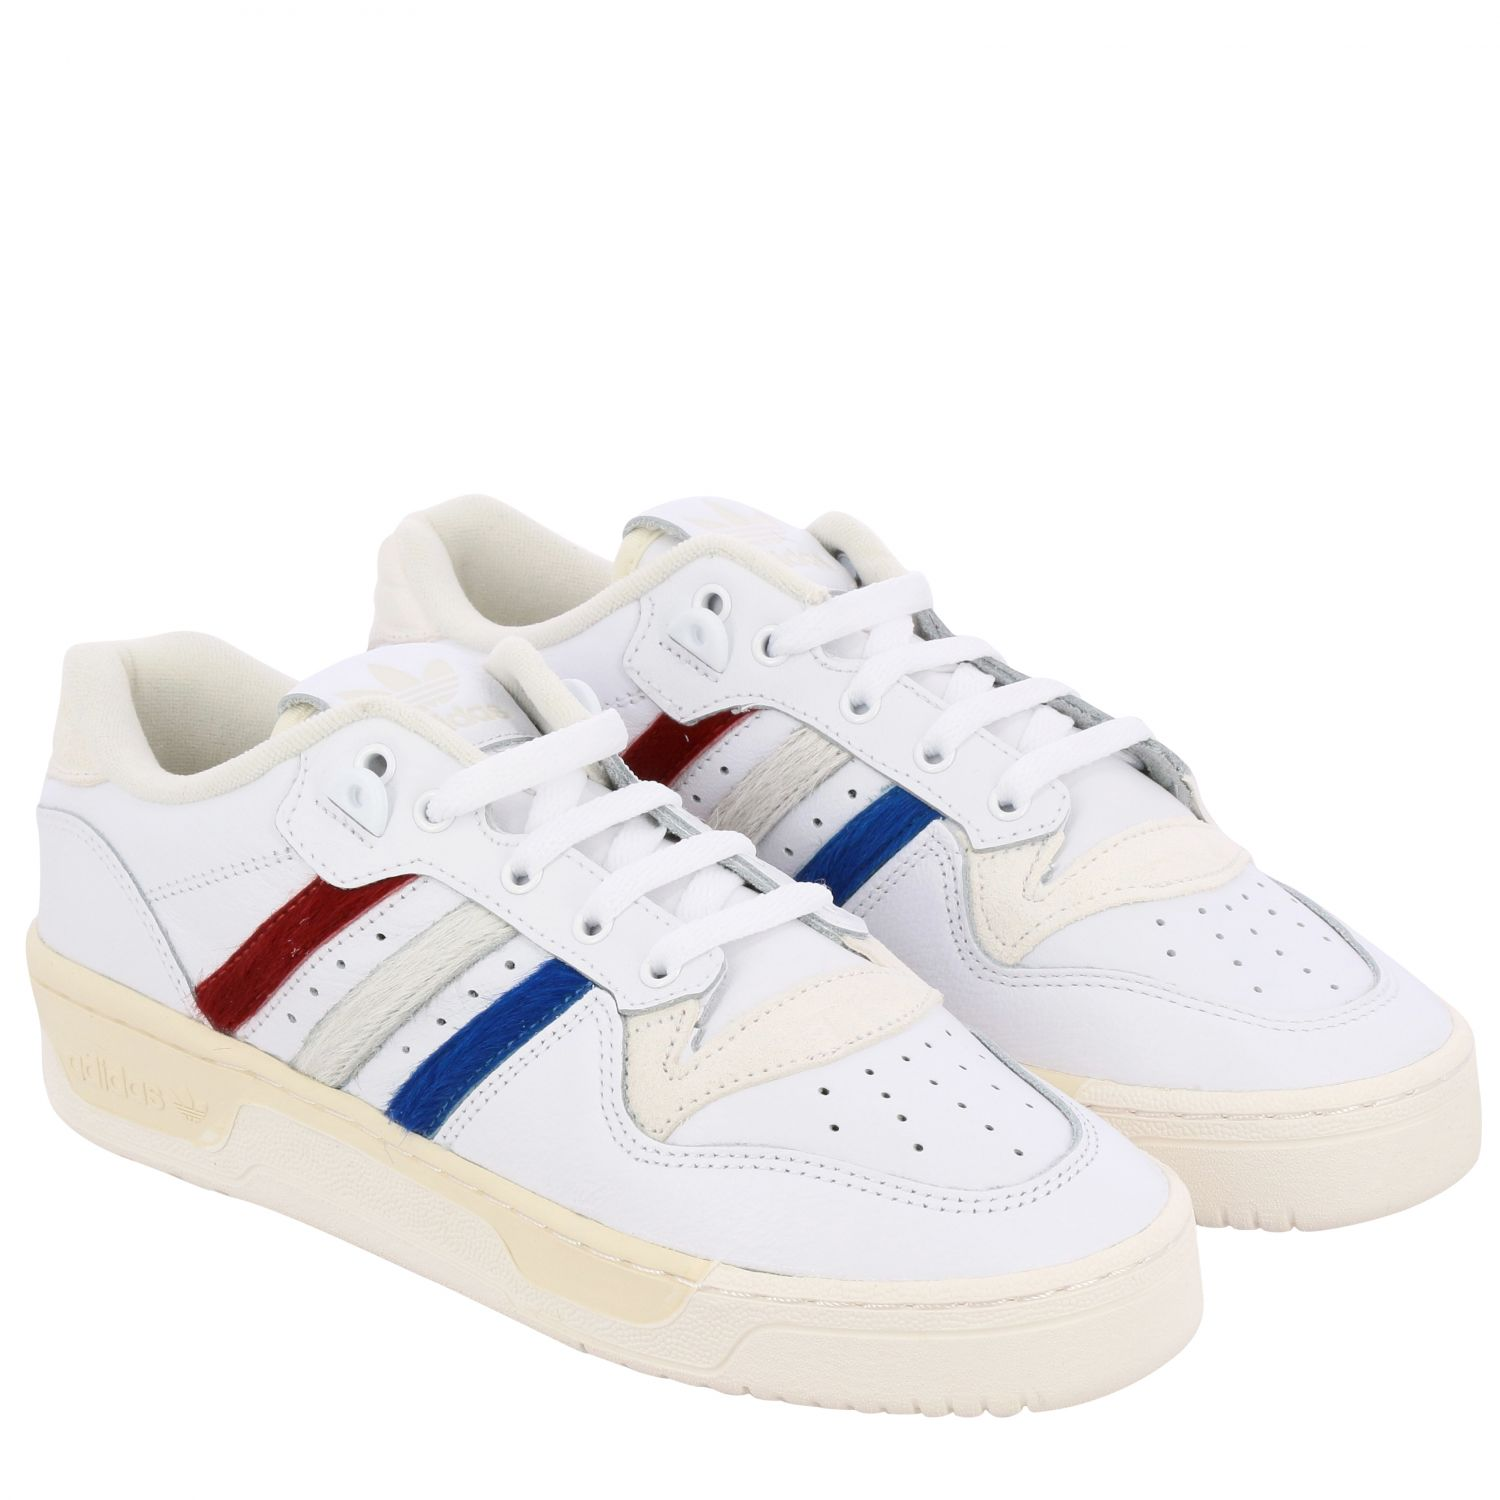 Sneakers Adidas Originals: Shoes men Adidas Originals white 2